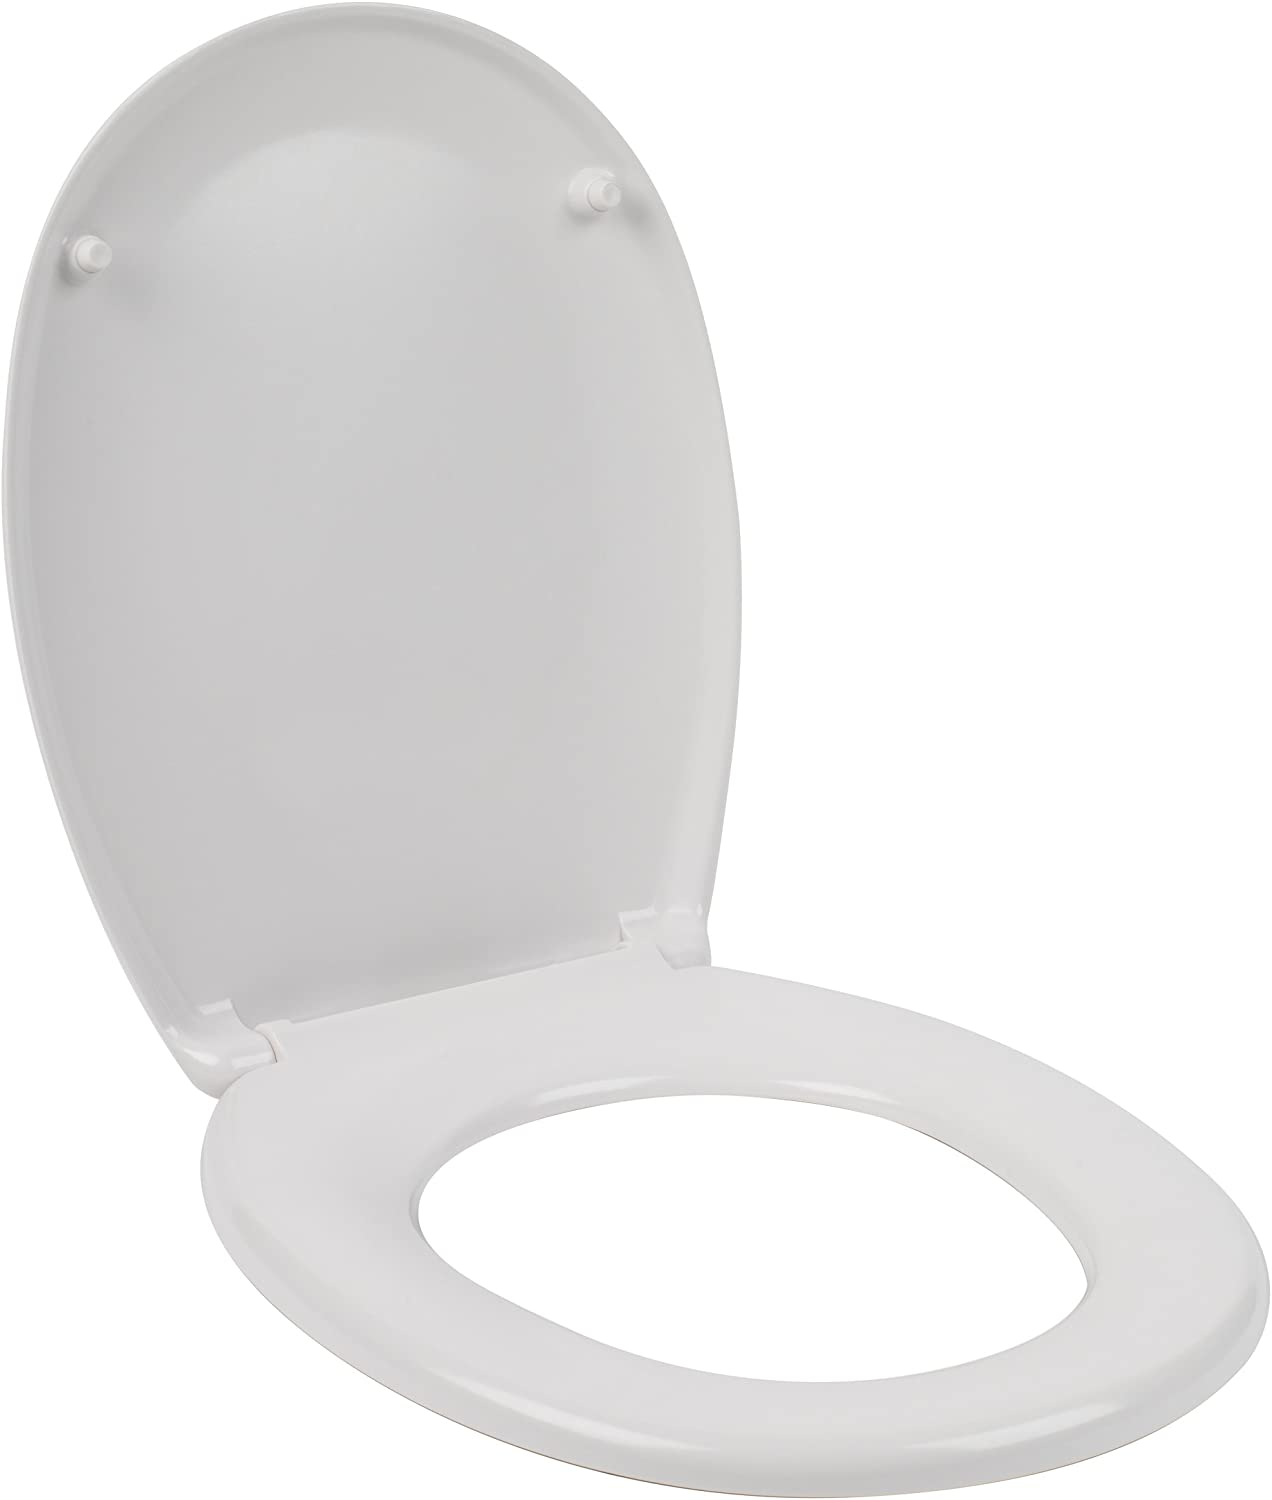 Beldray At the price of surprise Easy Fit Soft Close Toilet Seat x 38.5 New York Mall Duroplast White